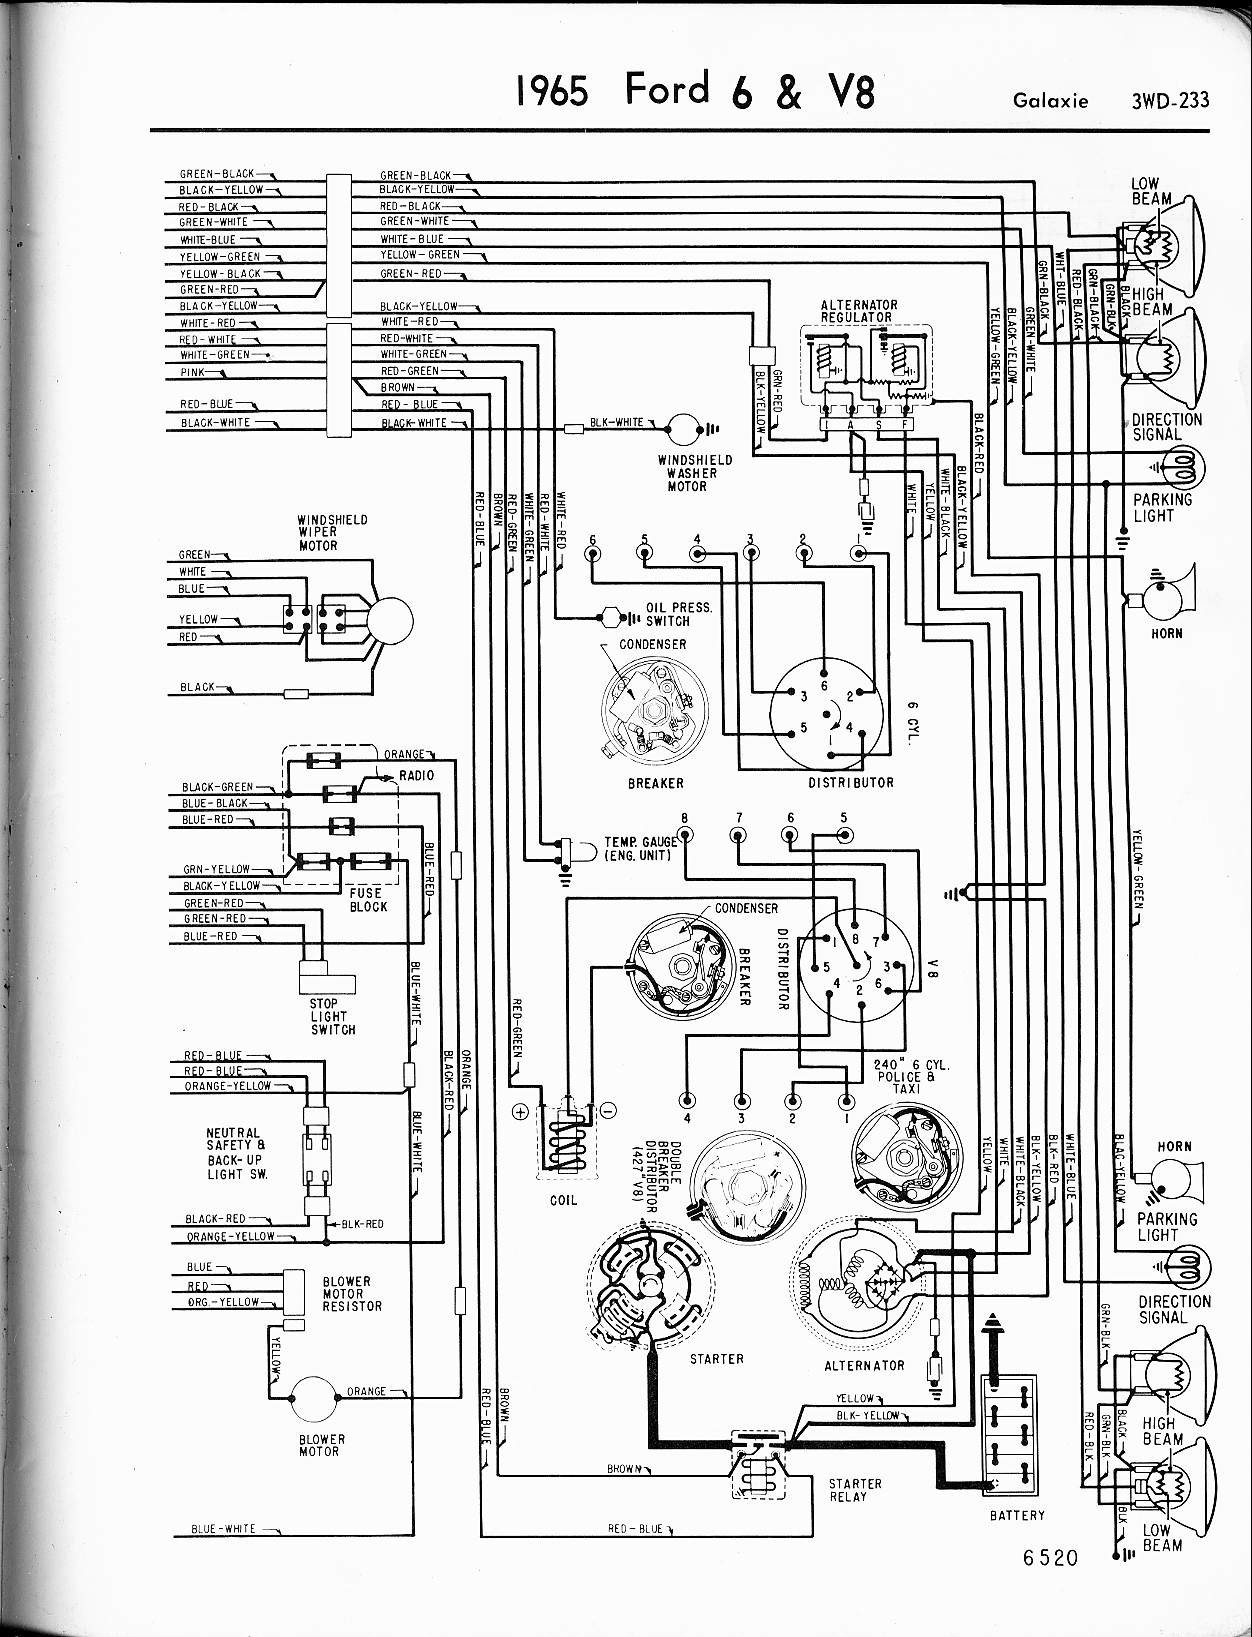 vintage mustang wiring diagrams brilliant 1965 ford diagram rh justsayessto me 1965 ford alternator wiring diagram 1965 ford ranchero wiring diagram